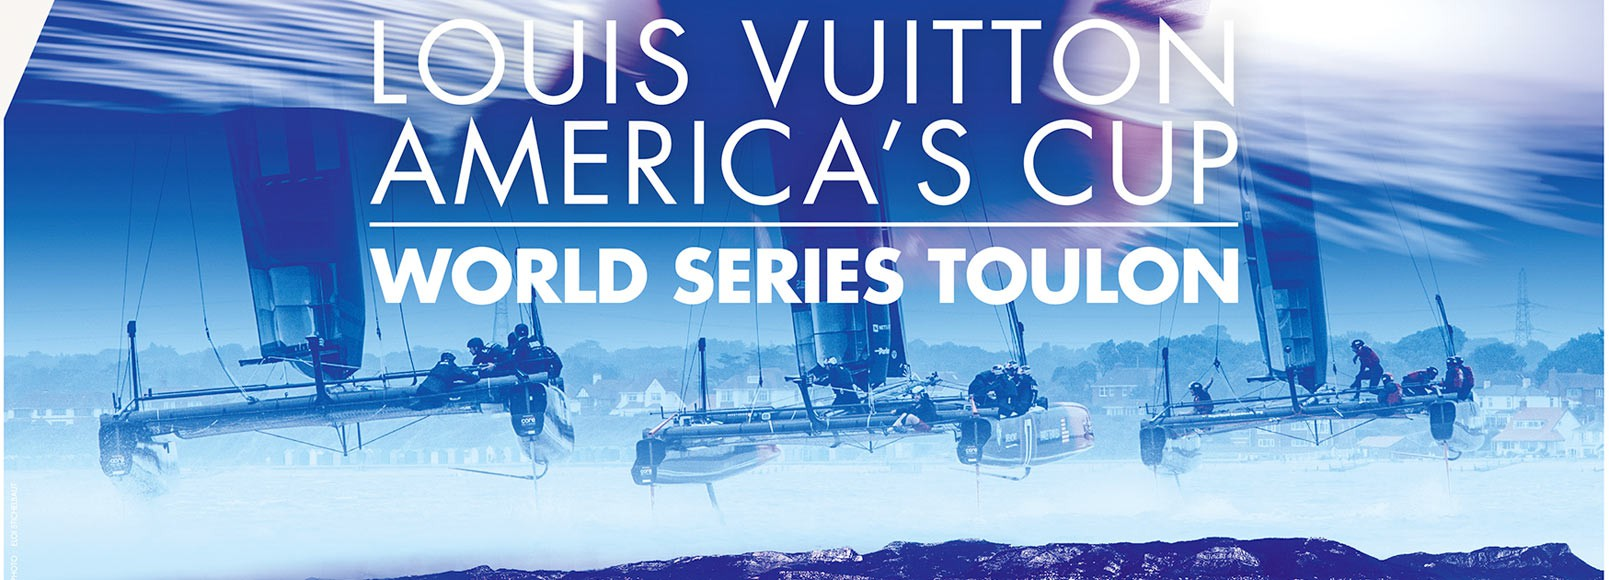 Toulon accueille l'America's Cup World Series !